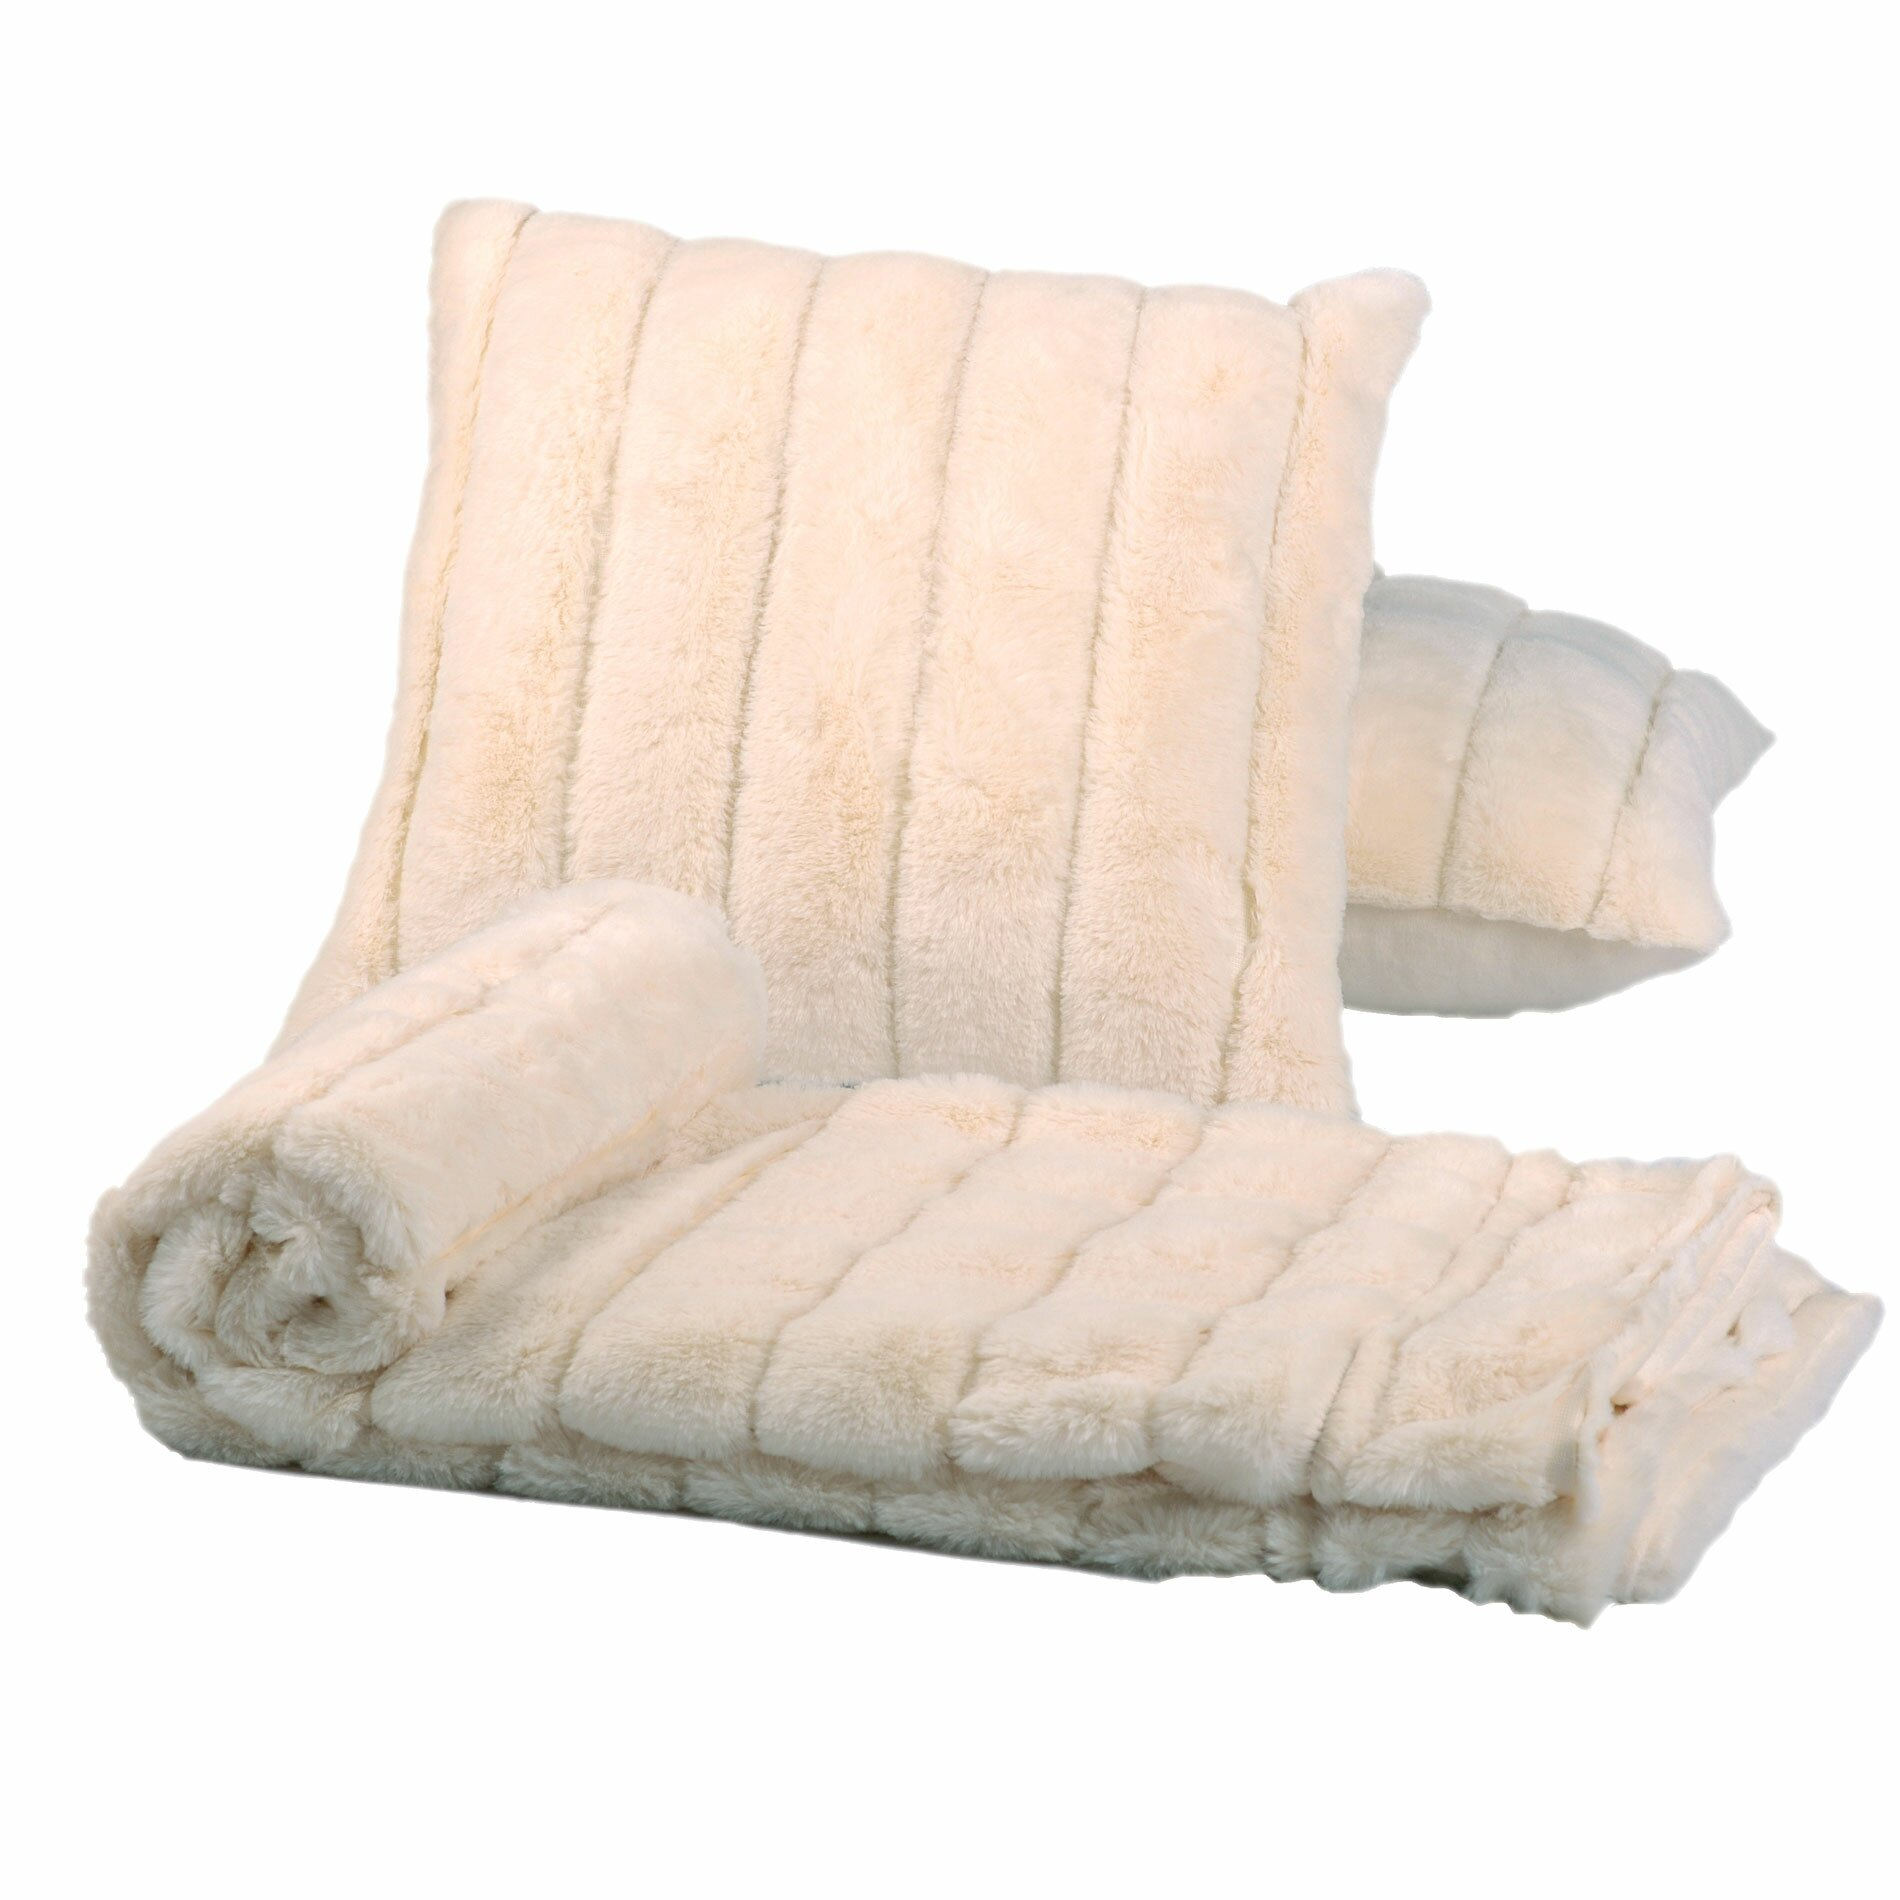 Throw Pillow And Blanket Set : BOON Throw & Blanket Luxury Rabbit Faux Fur Throw and Pillow Combo & Reviews Wayfair